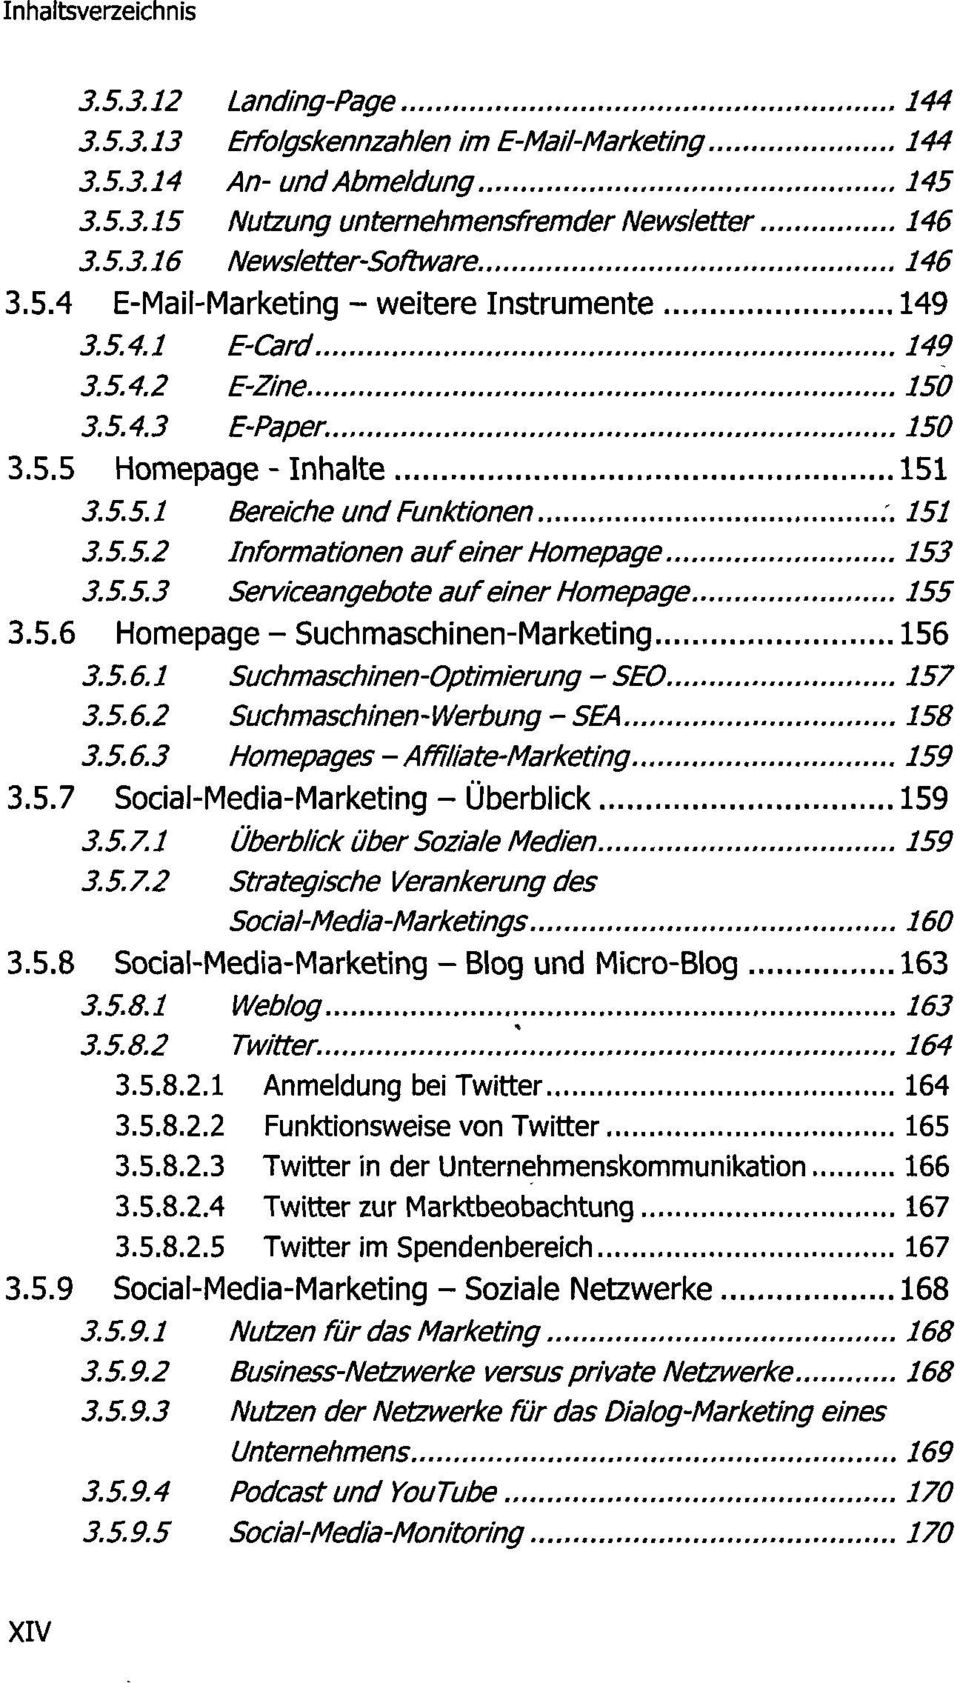 5.6 Homepage - Suchmaschinen-Marketing 156 3.5.6.1 Suchmaschinen-Optimierung - SEO 157 3.5.6.2 Suchmaschinen-Werbung - SEA 158 3.5.6.3 Homepages - Affiliate-Marketing 159 3.5.7 Social-Media-Marketing - Überblick 159 3.